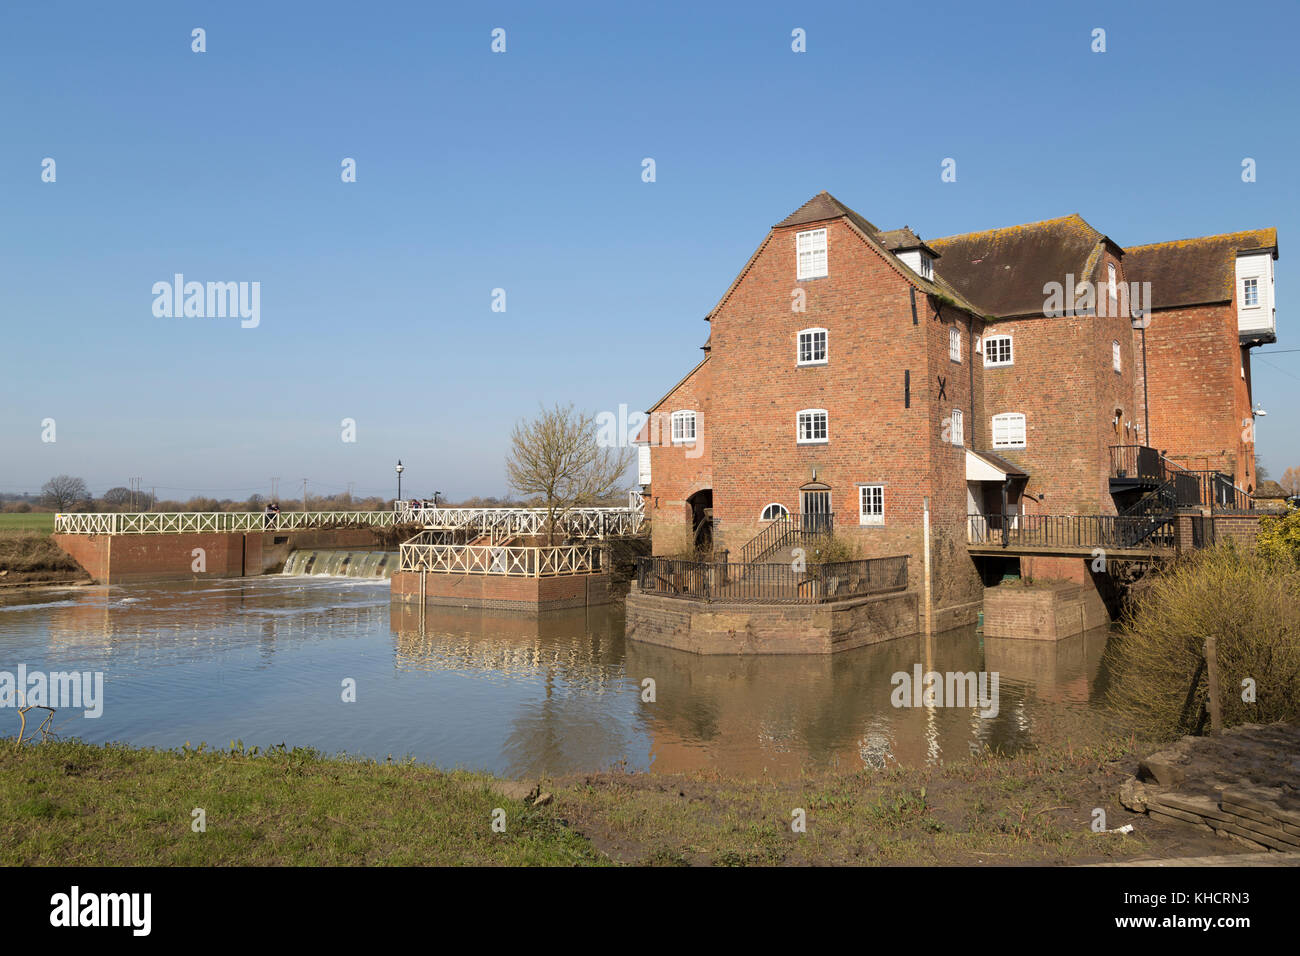 UK, Tewkesbury, weir and Abbey Mill. - Stock Image